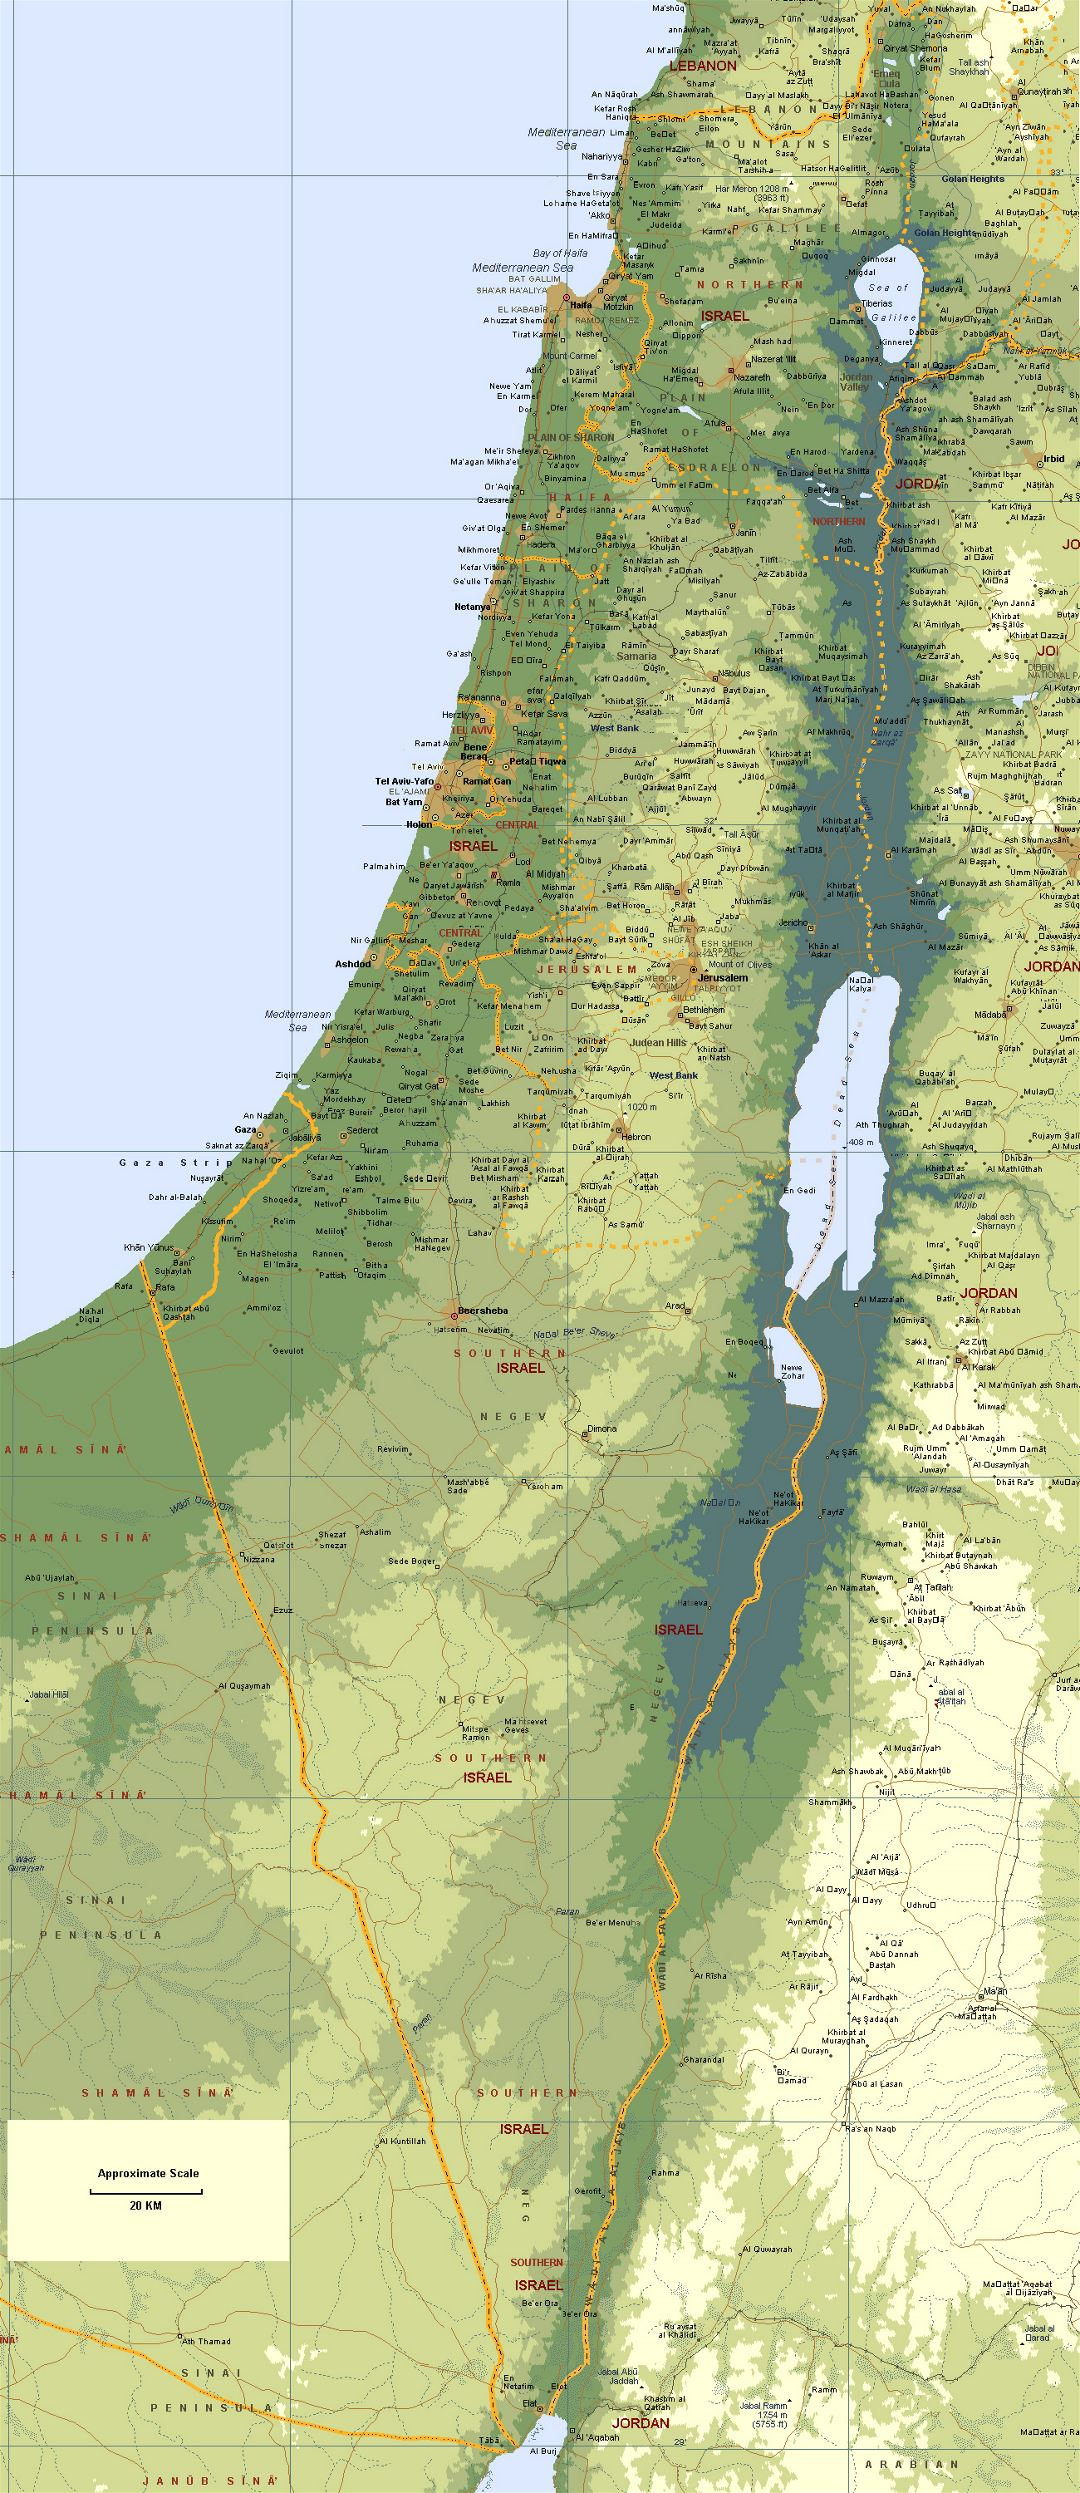 Large elevation map of Israel with roads and cities